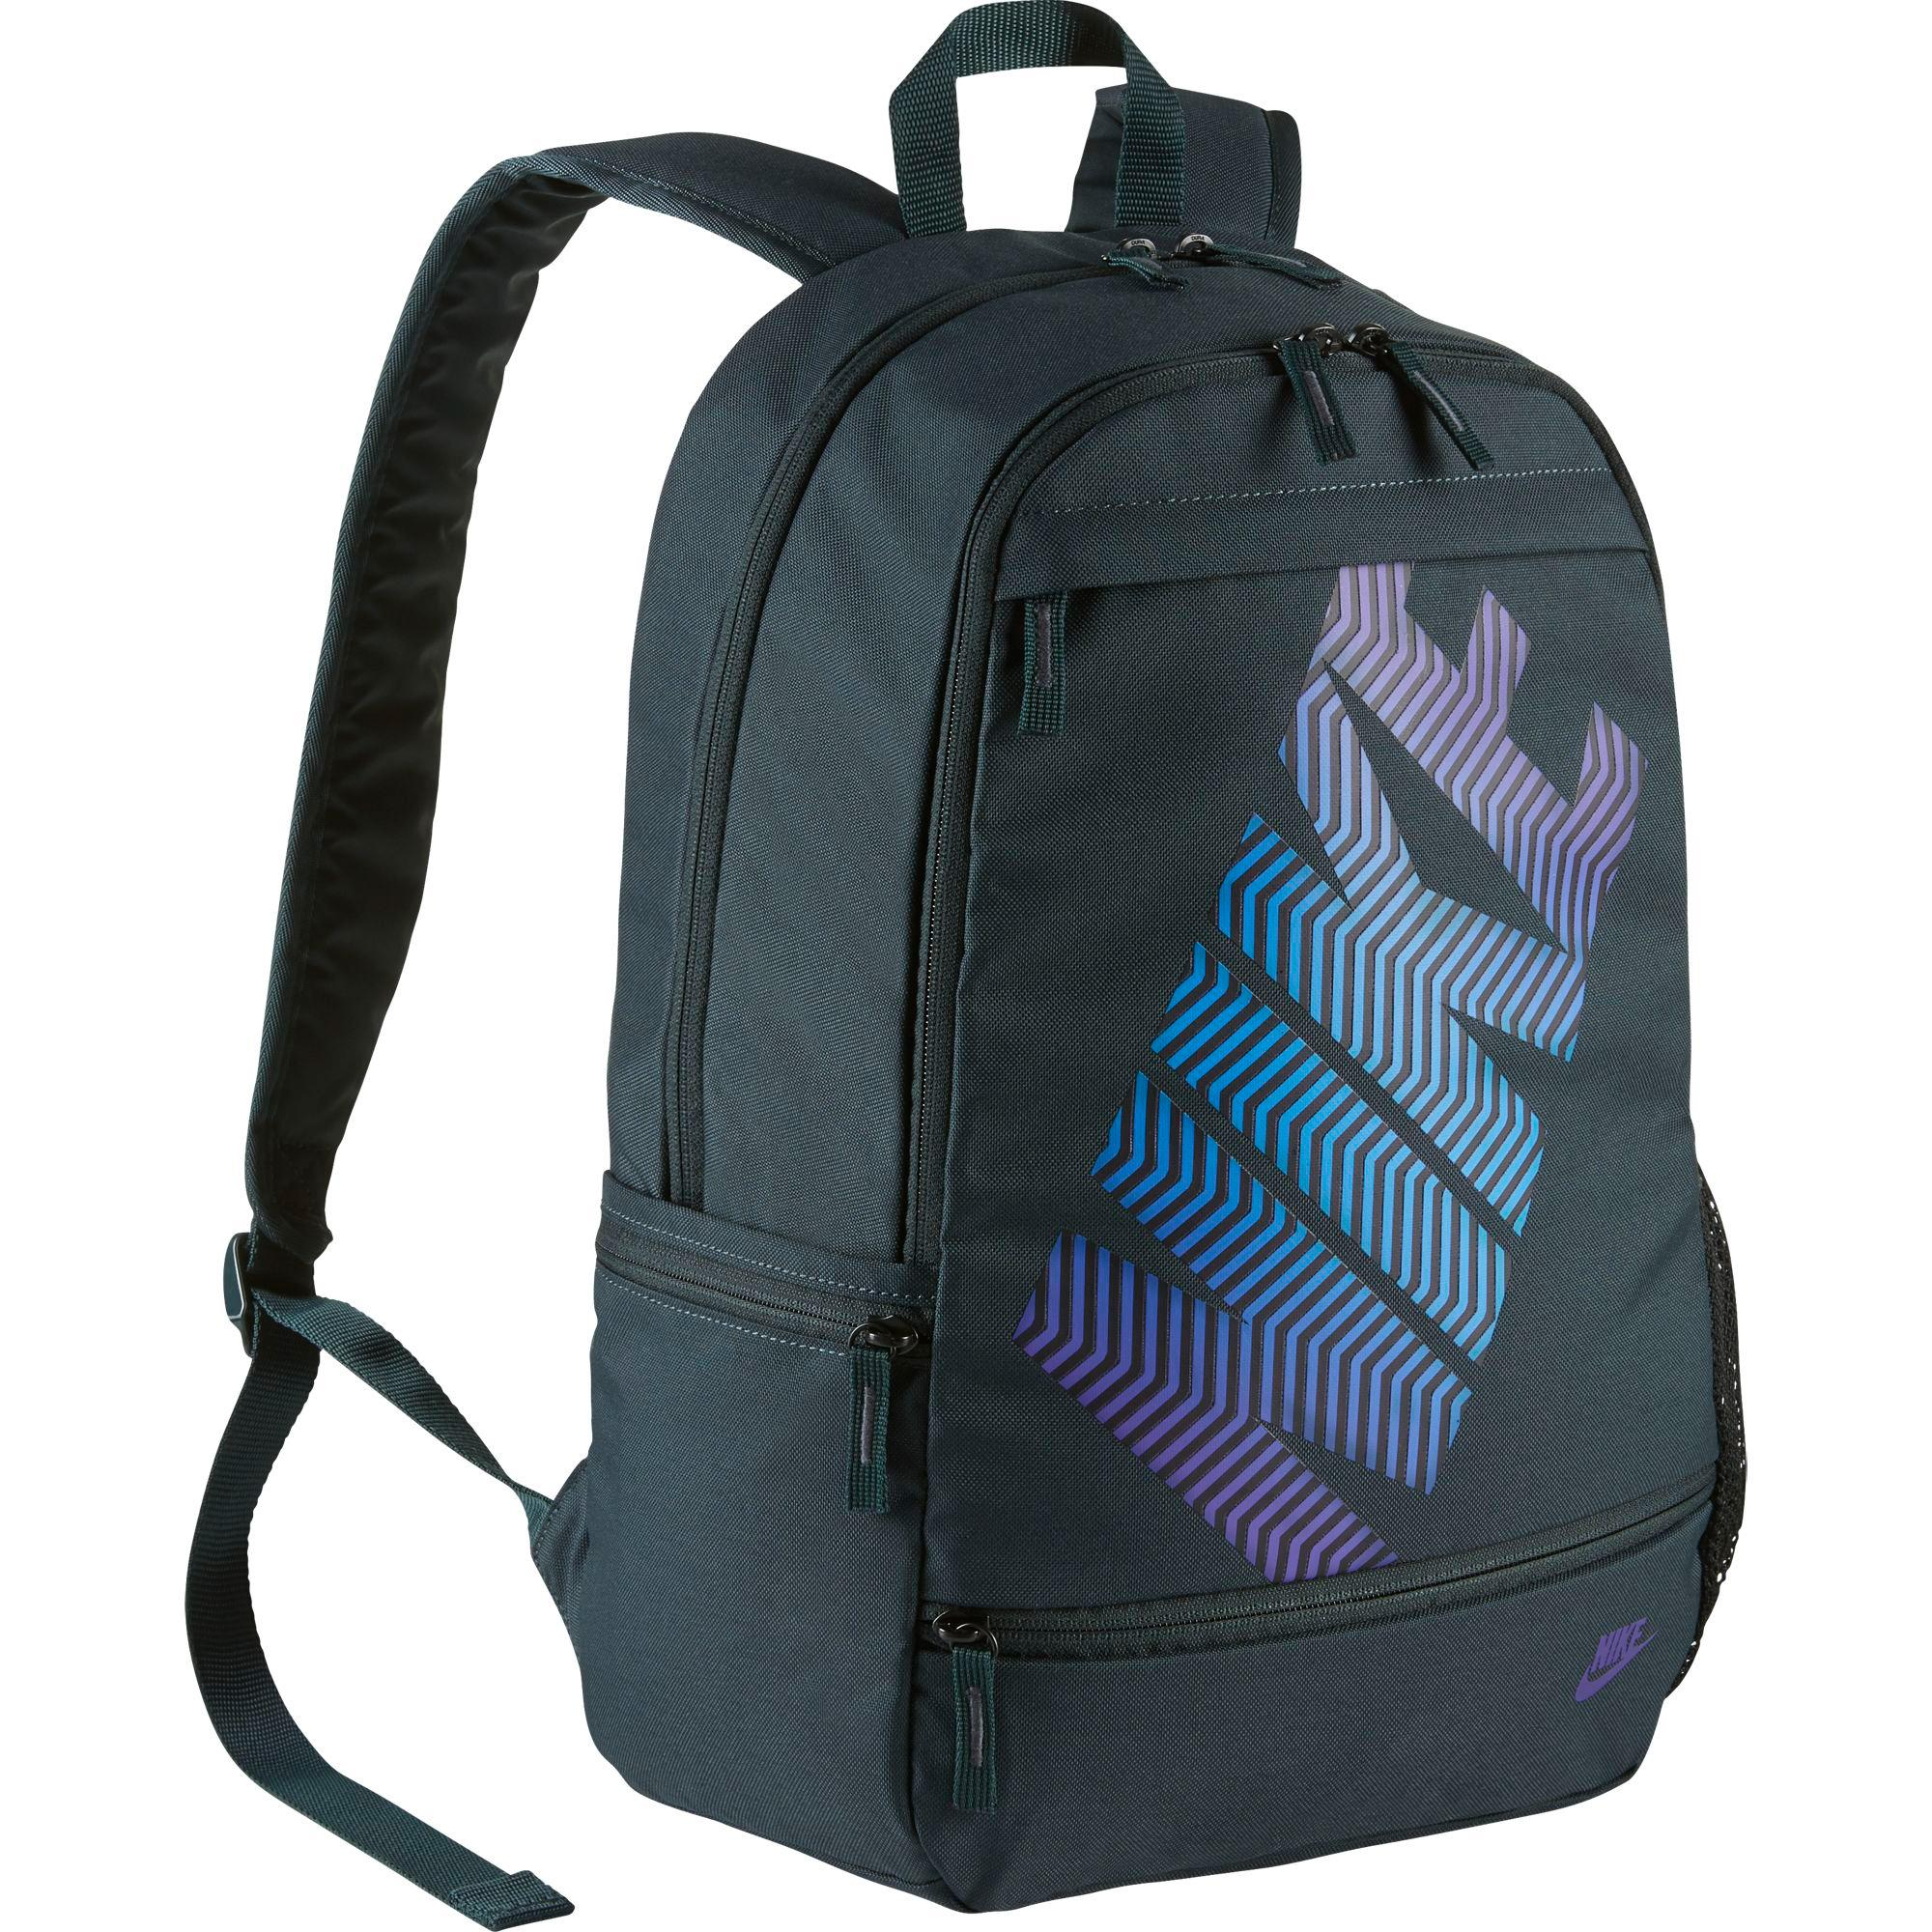 8c5a1886f8 Nike Classic Line Backpack - Black/Blue - Tennisnuts.com